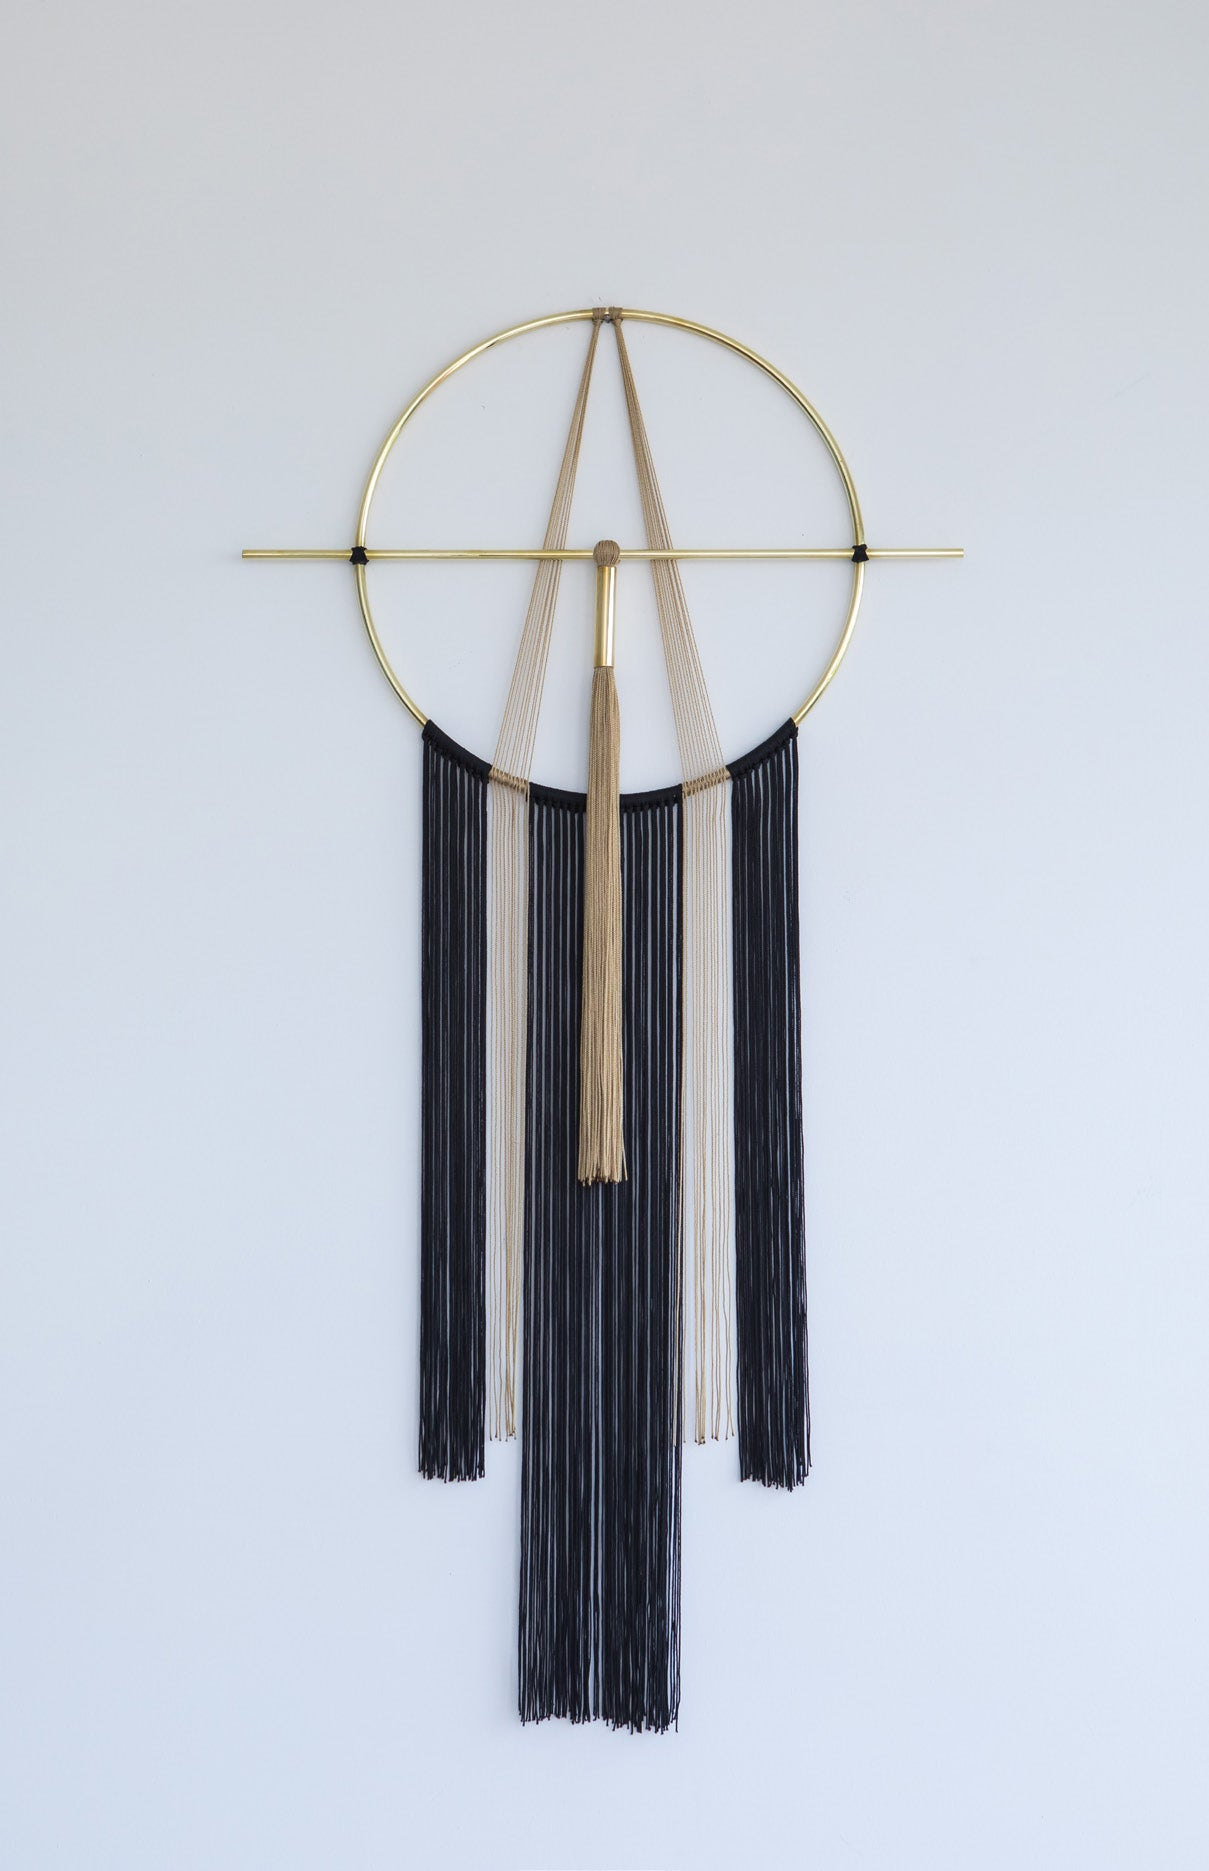 Brass and nylon wall hanging black and ochre brown